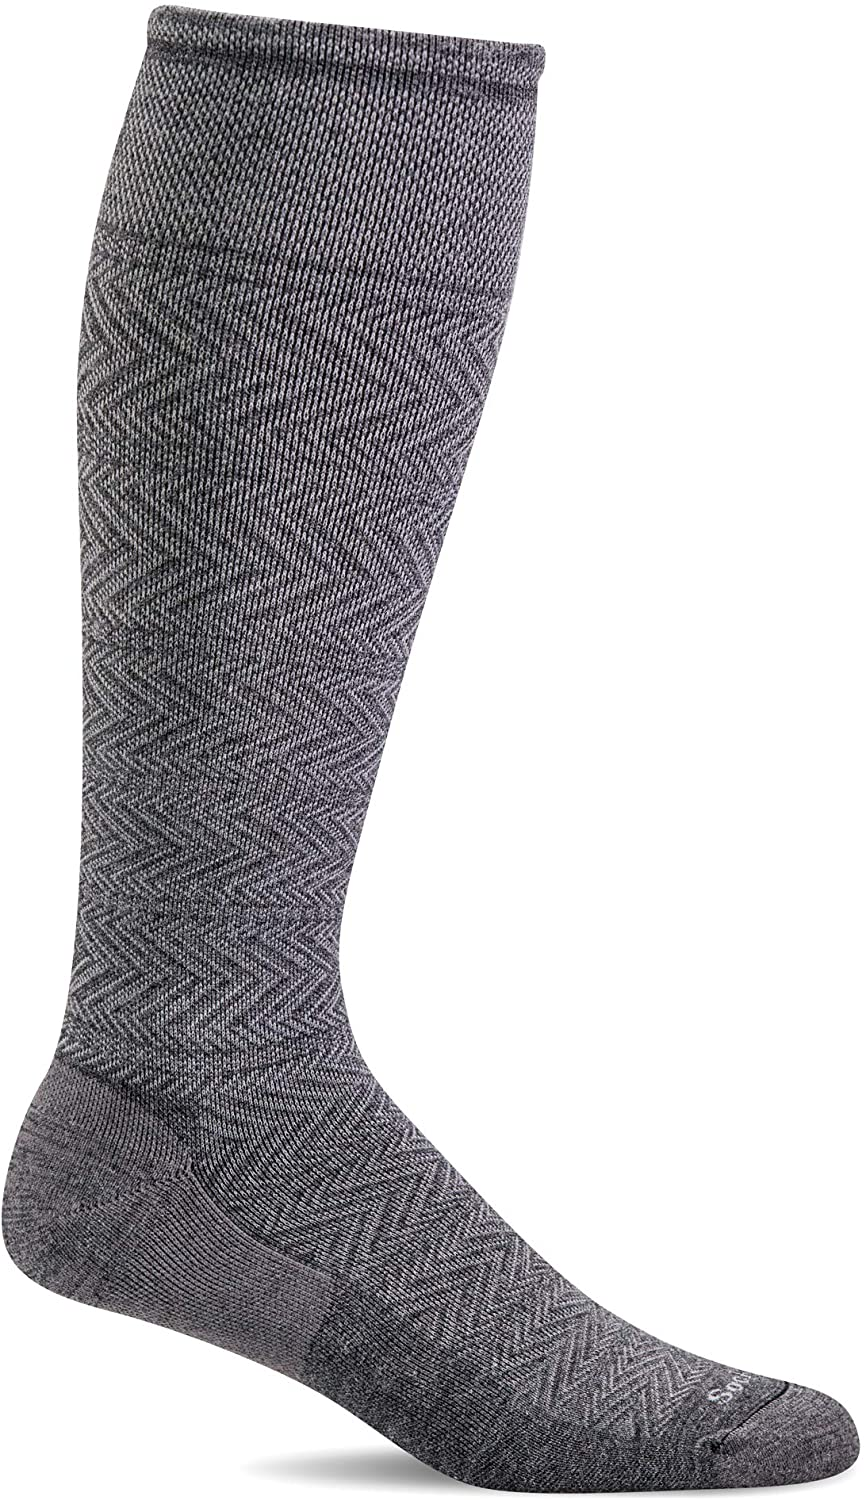 Sockwell Men's Chevron Twill Firm Graduated Compression Sock in Charcoal from the side